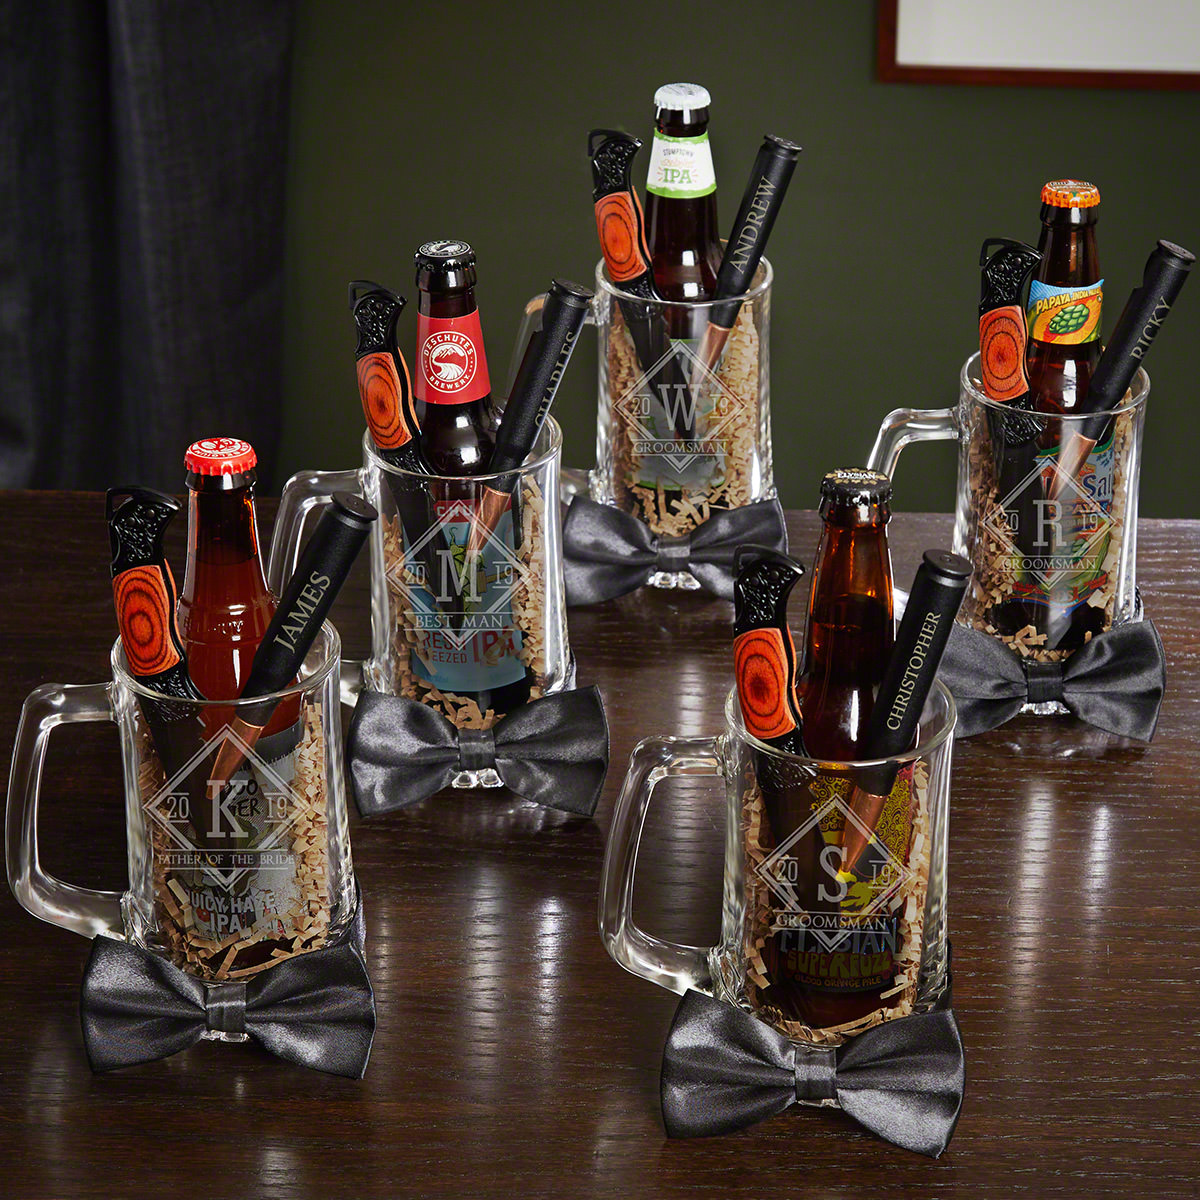 Drake Personalized Bottle Openers & Beer Mugs for Groomsmen – Gift Set for 5